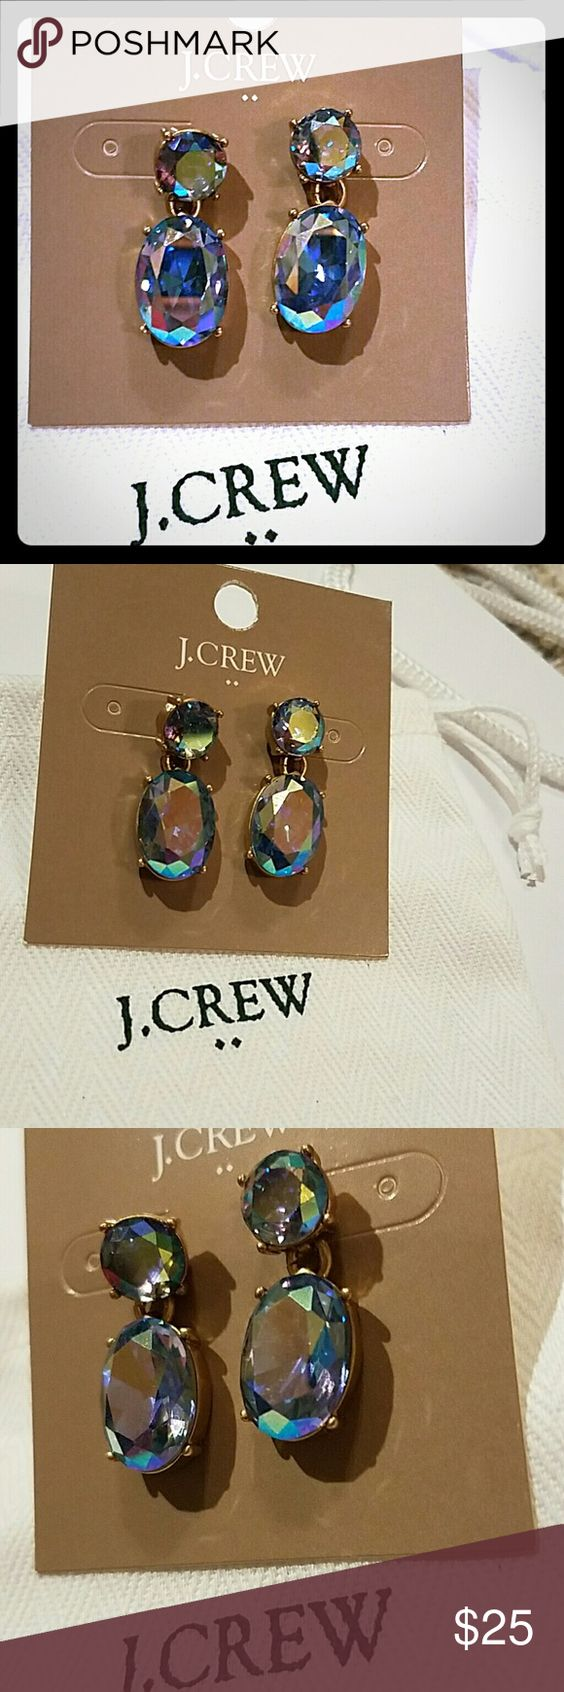 J. Crew Blue Crystal Earrings Brand new with tags and dust bag J. Crew Jewelry Earrings